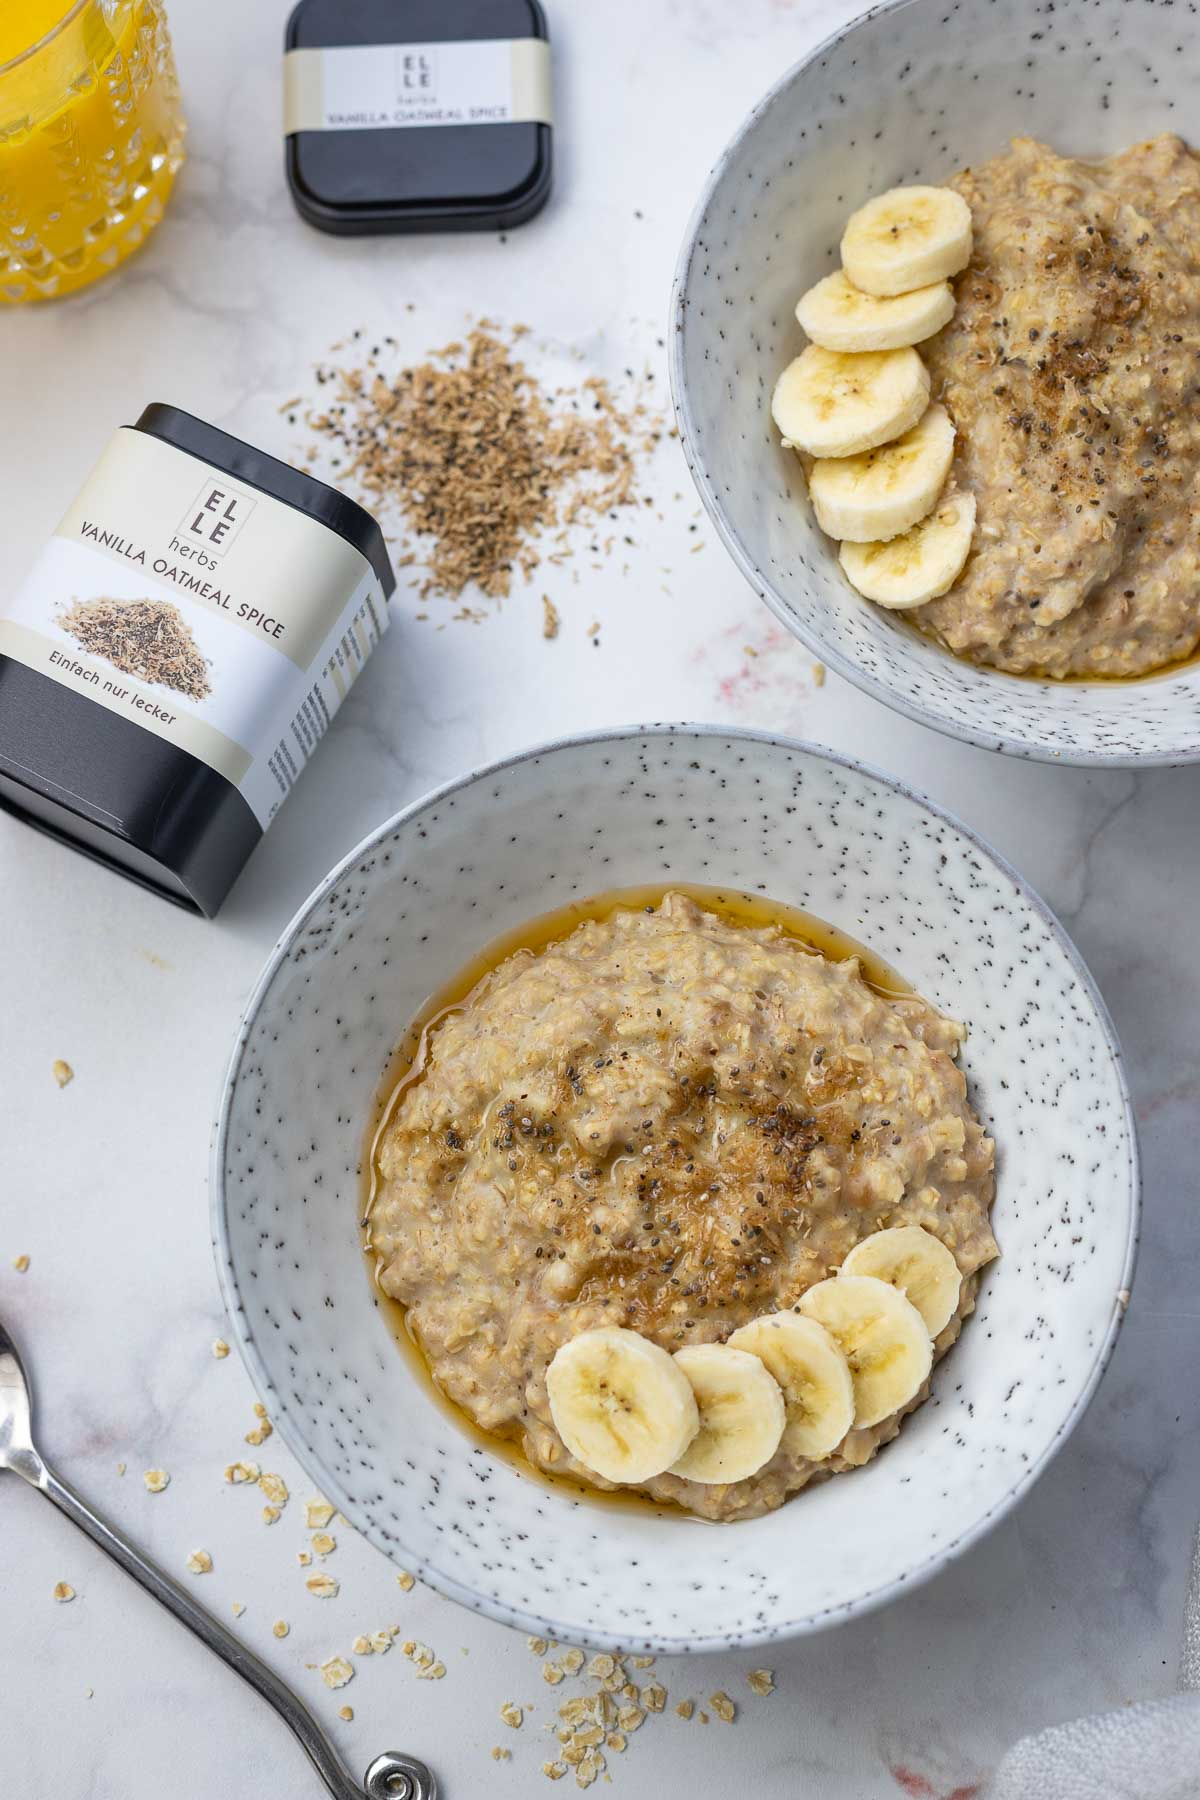 Banana Porridge with Maple Syrup Elle Herbs Vanilla Spice